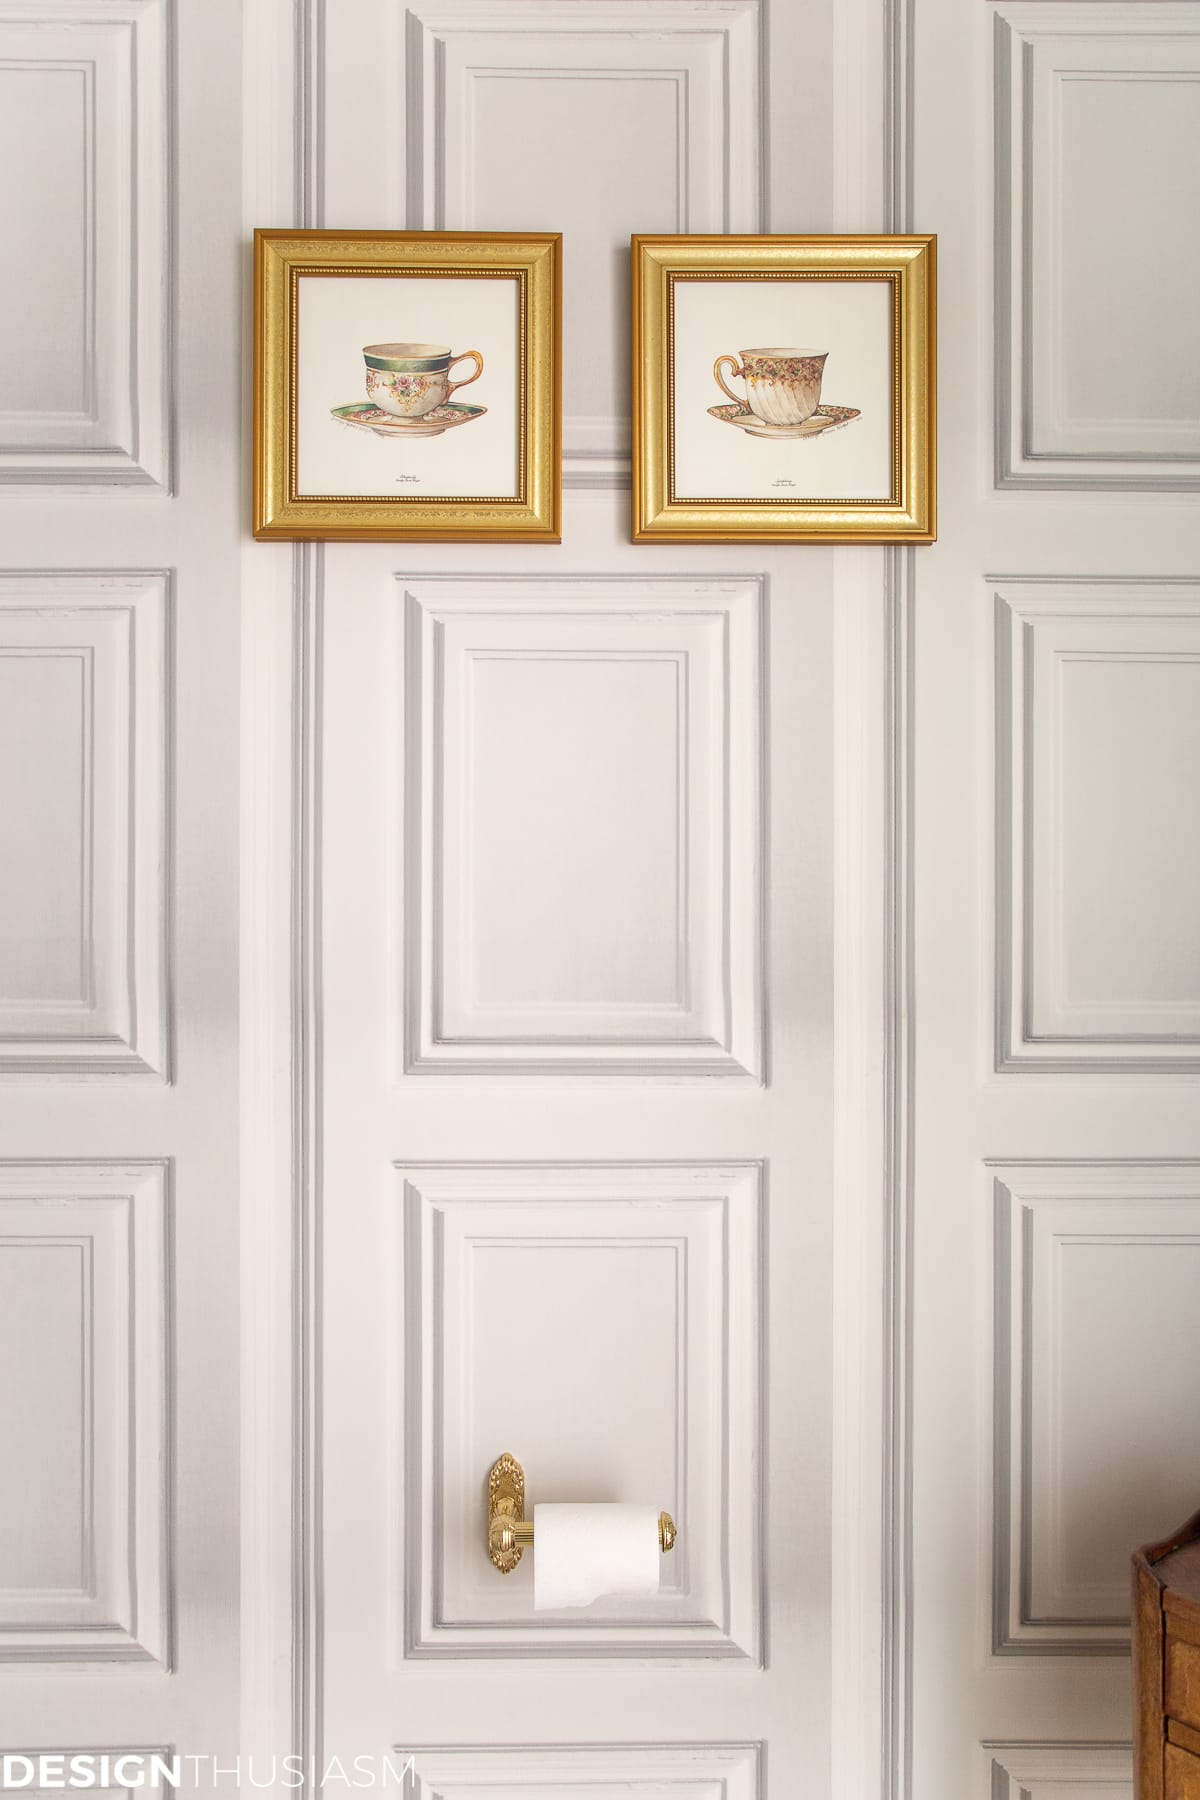 powder room wallpaper and teacup prints